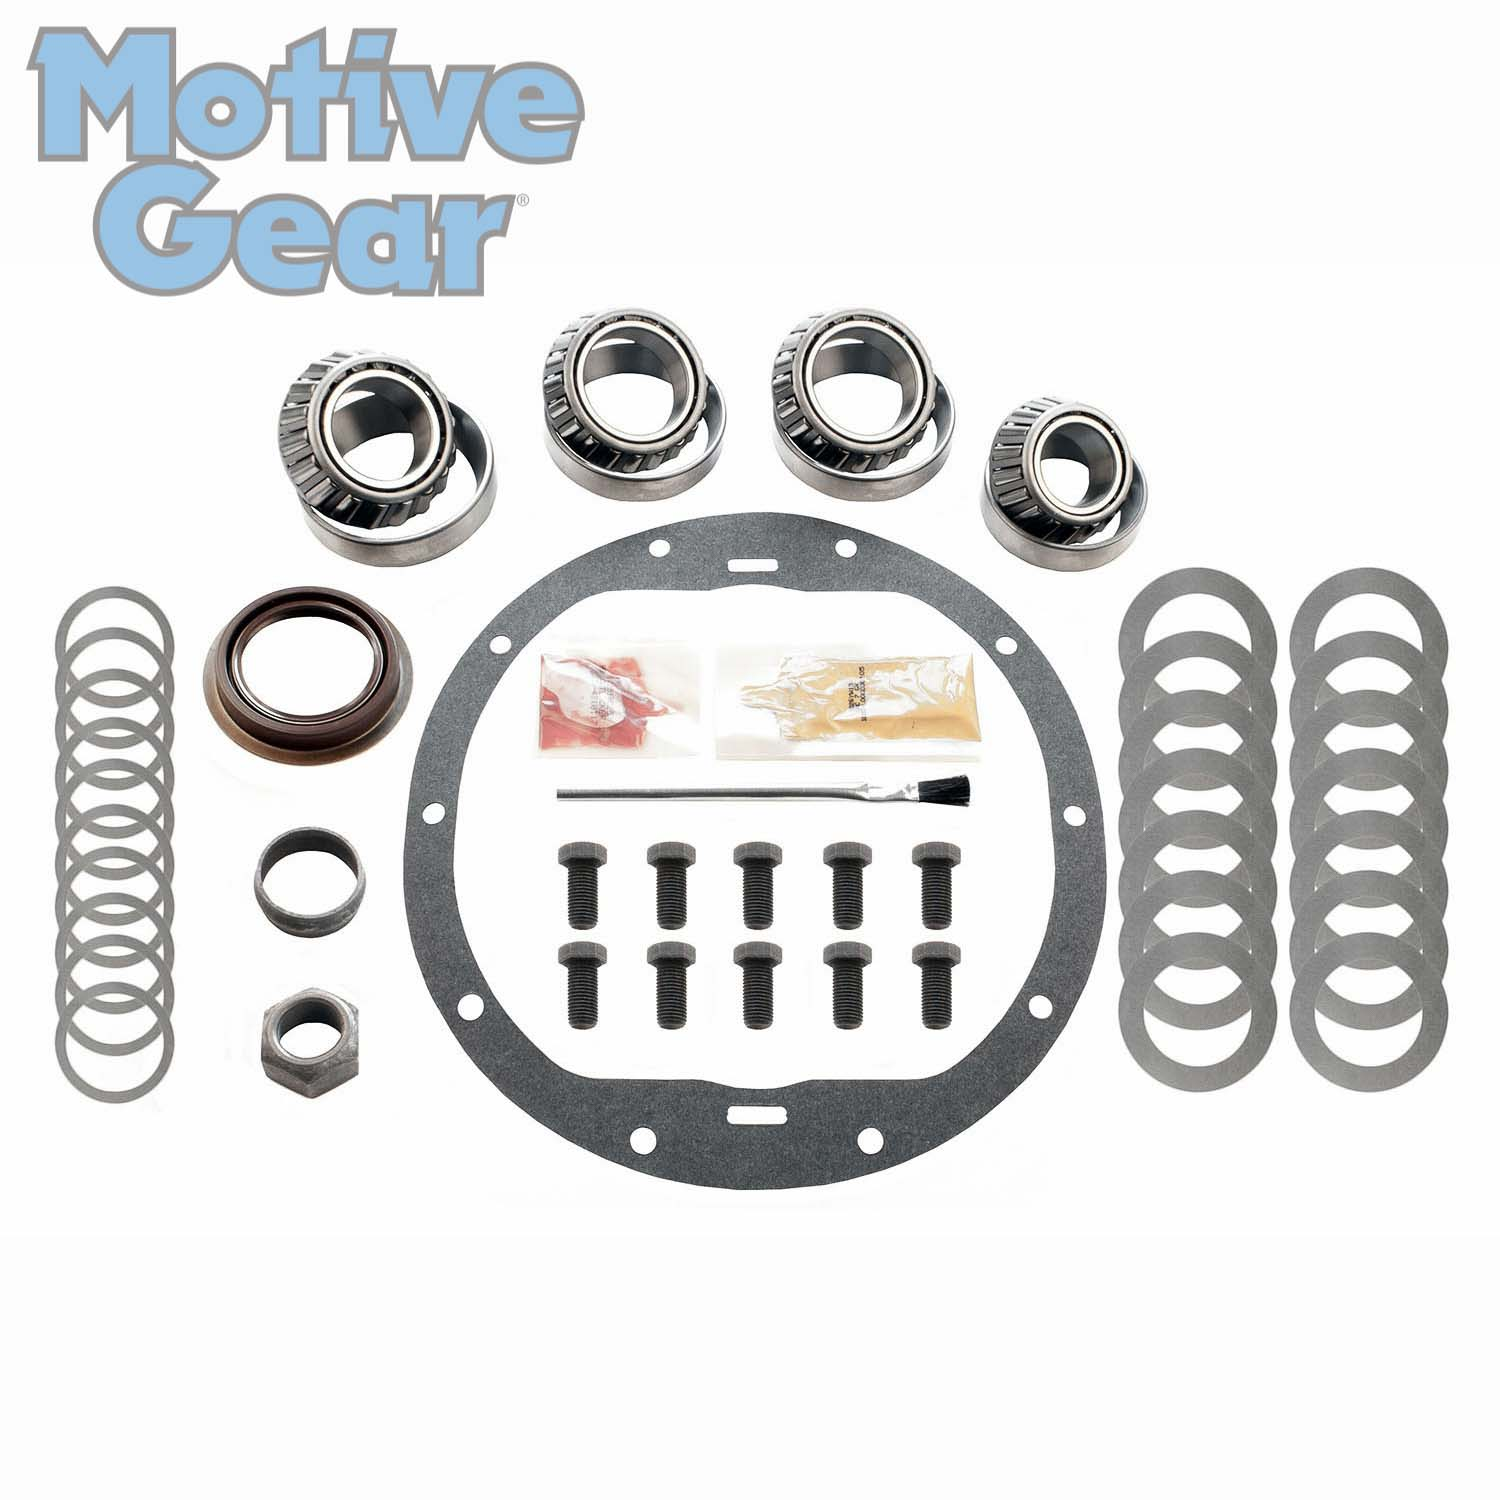 GM 8.6 10 Bolt Motive Gear Master Bearing Install Kit